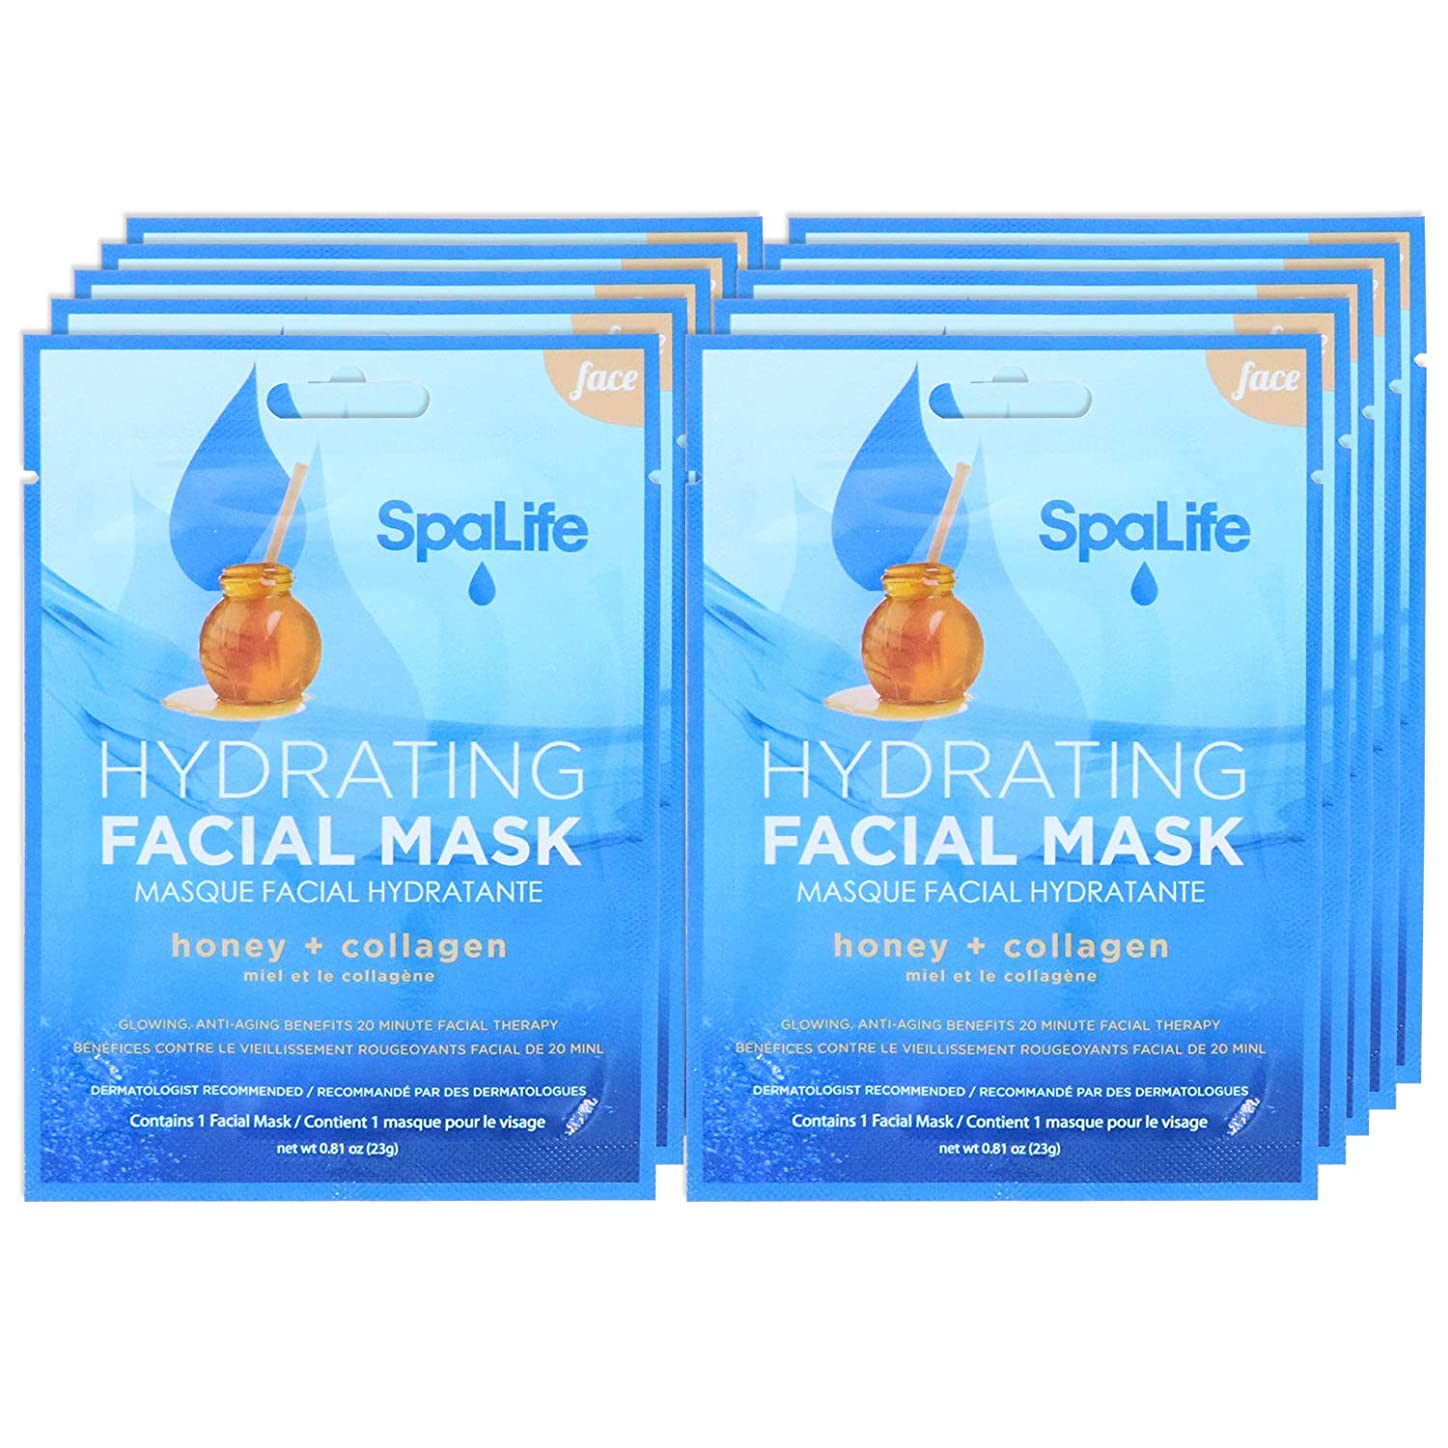 SpaLife Hydrating, Purifying, Anti-Aging, Detoxifying and Soothing Korean Facial Masks - 10 Masks - (Honey + Collagen) vvcqyuq049319